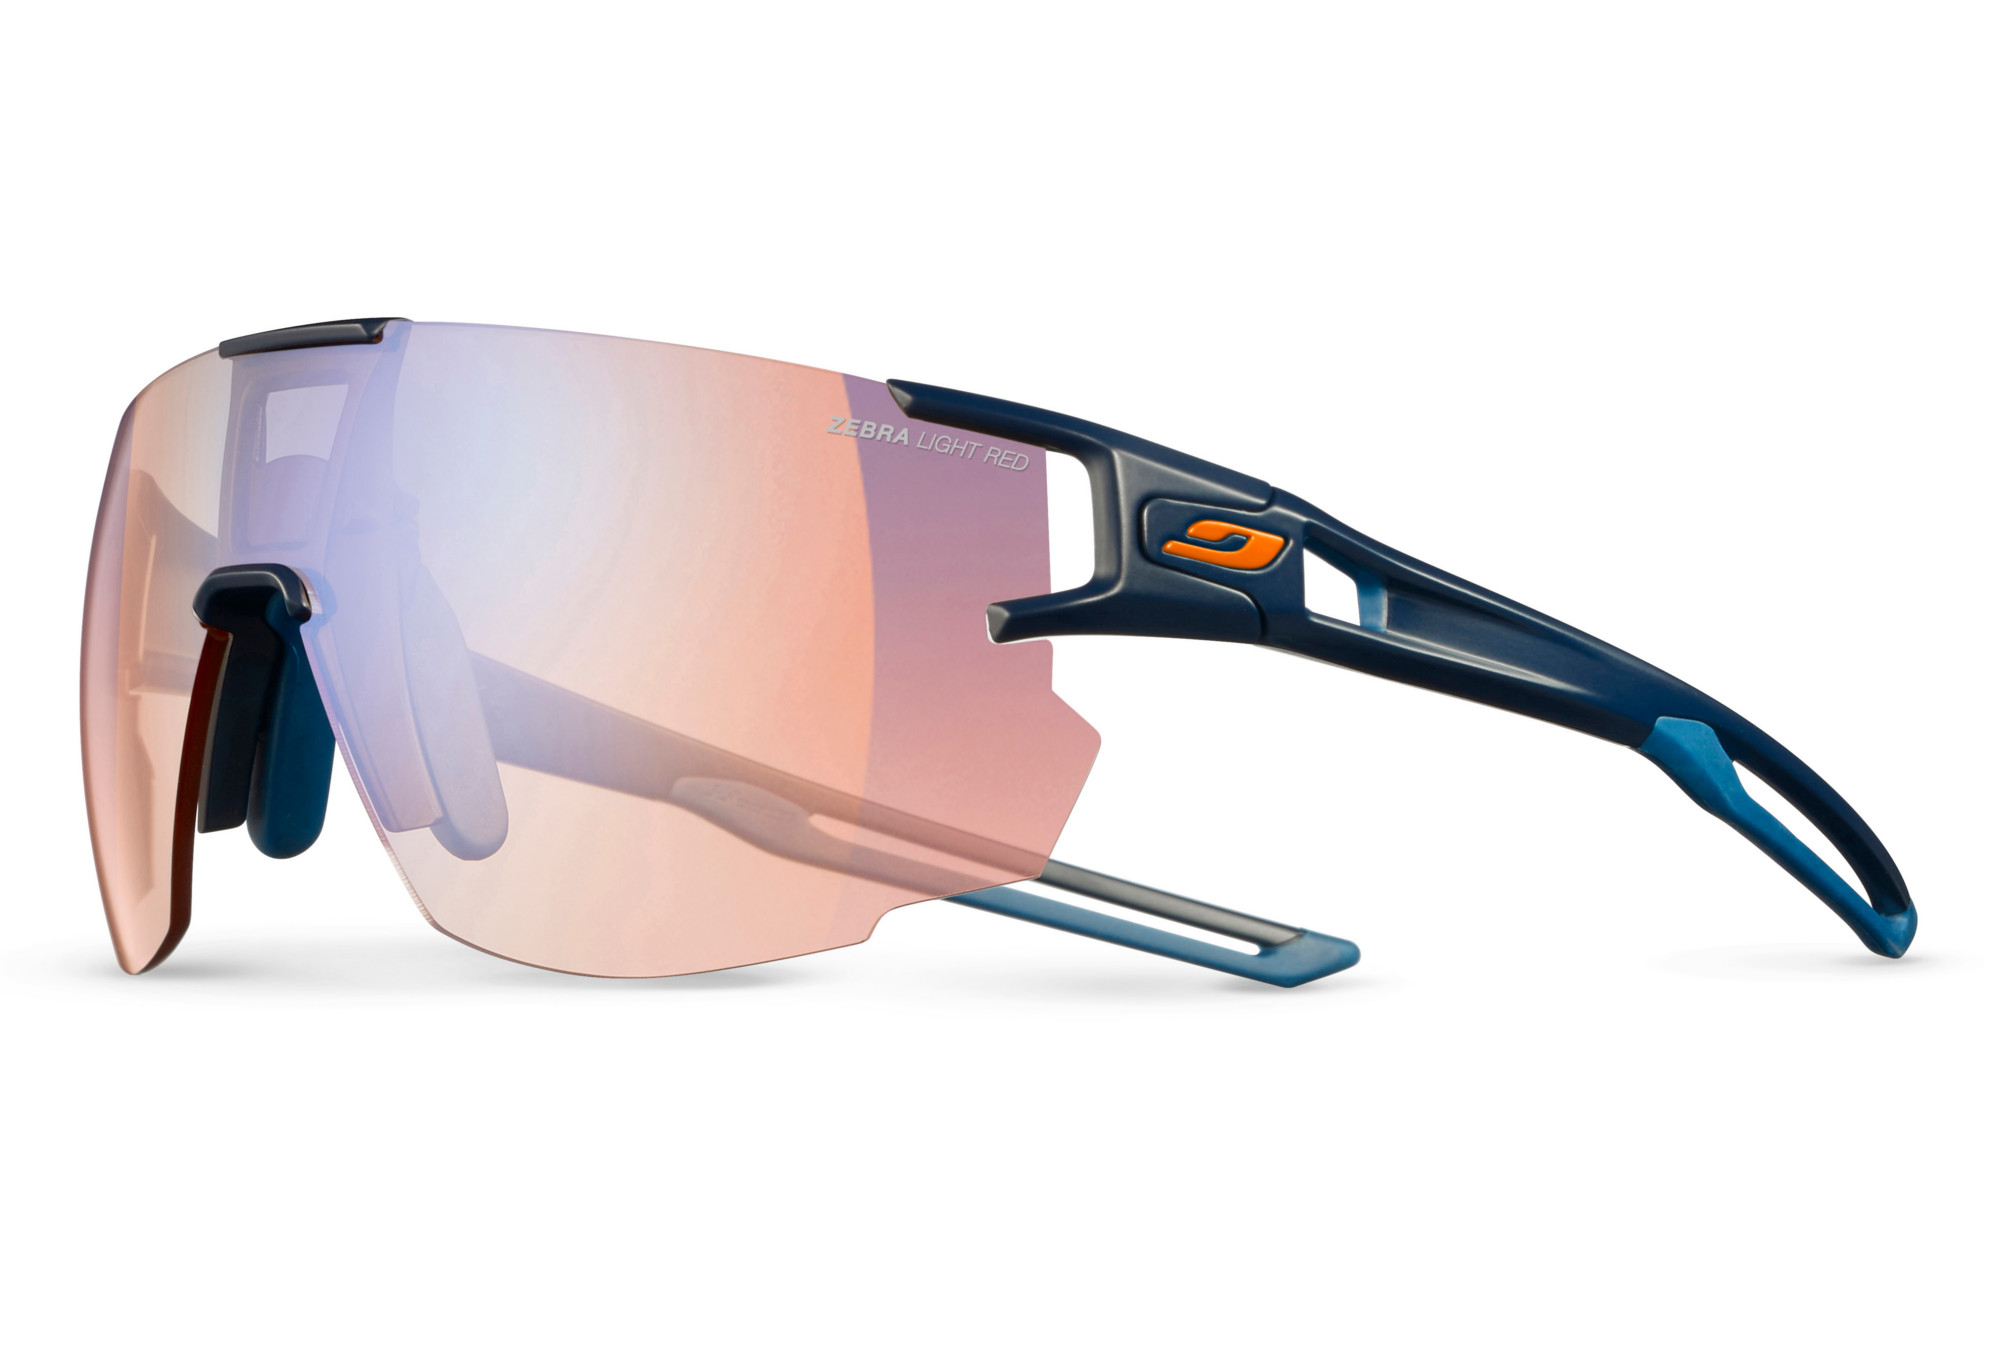 Julbo Aerospeed Sunglasses Zebra Light Blue - Red   Alltricks.com 69e96c1259ca